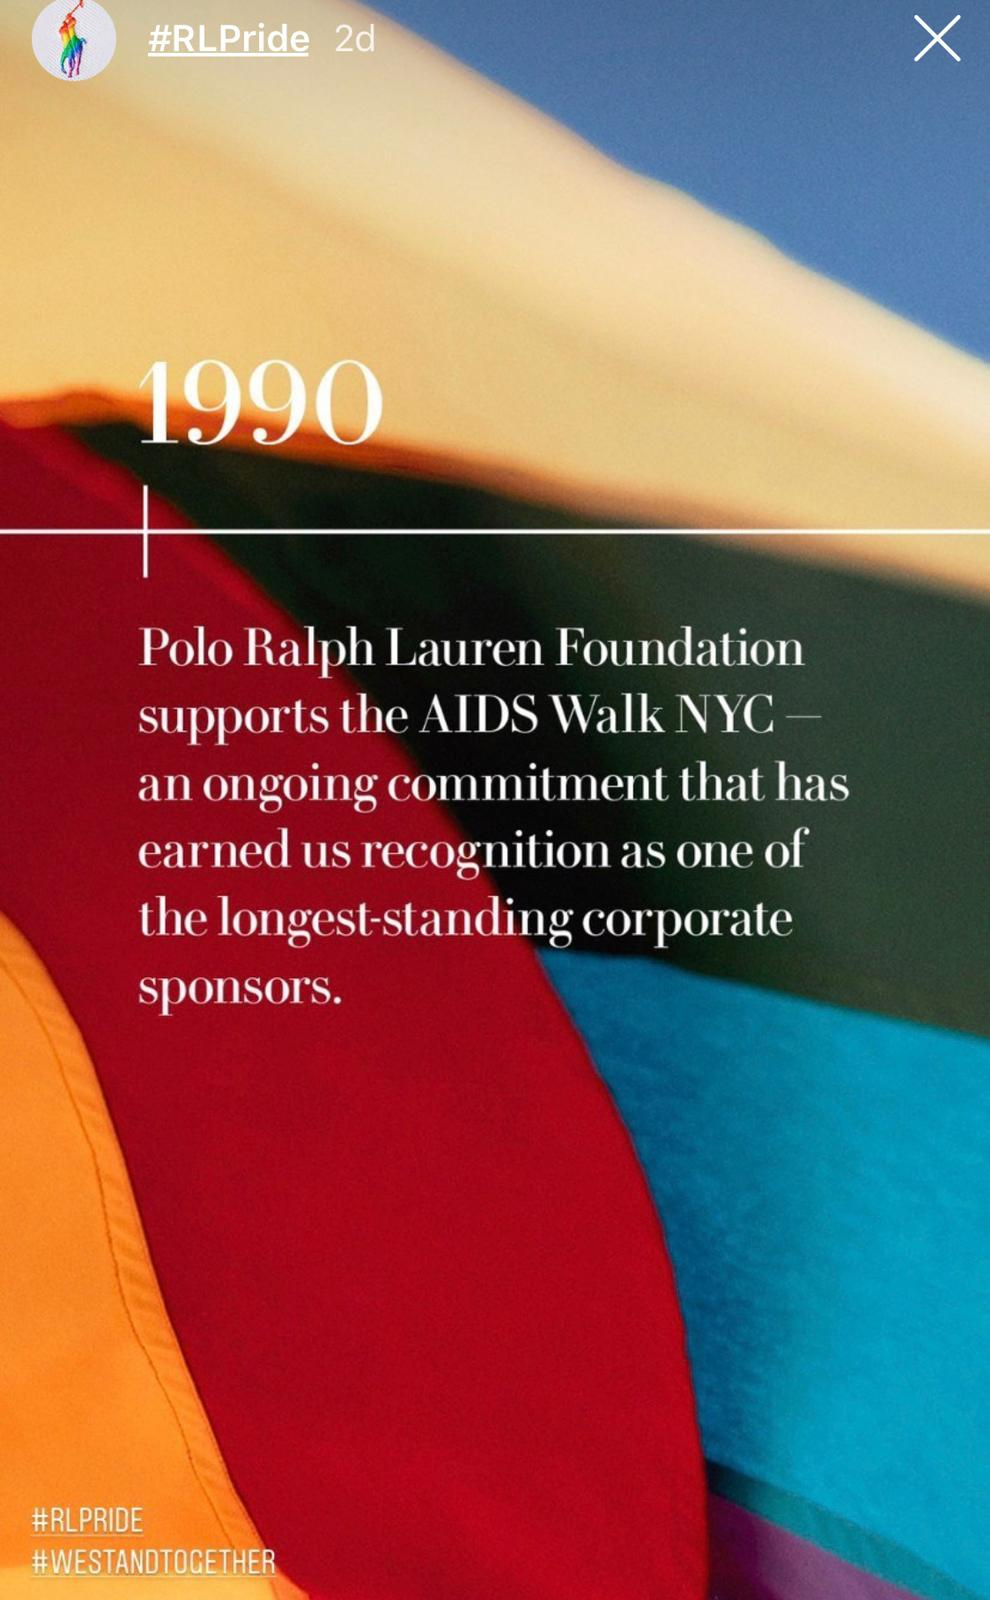 How Fashion Brands are celebrating Pride in 2020